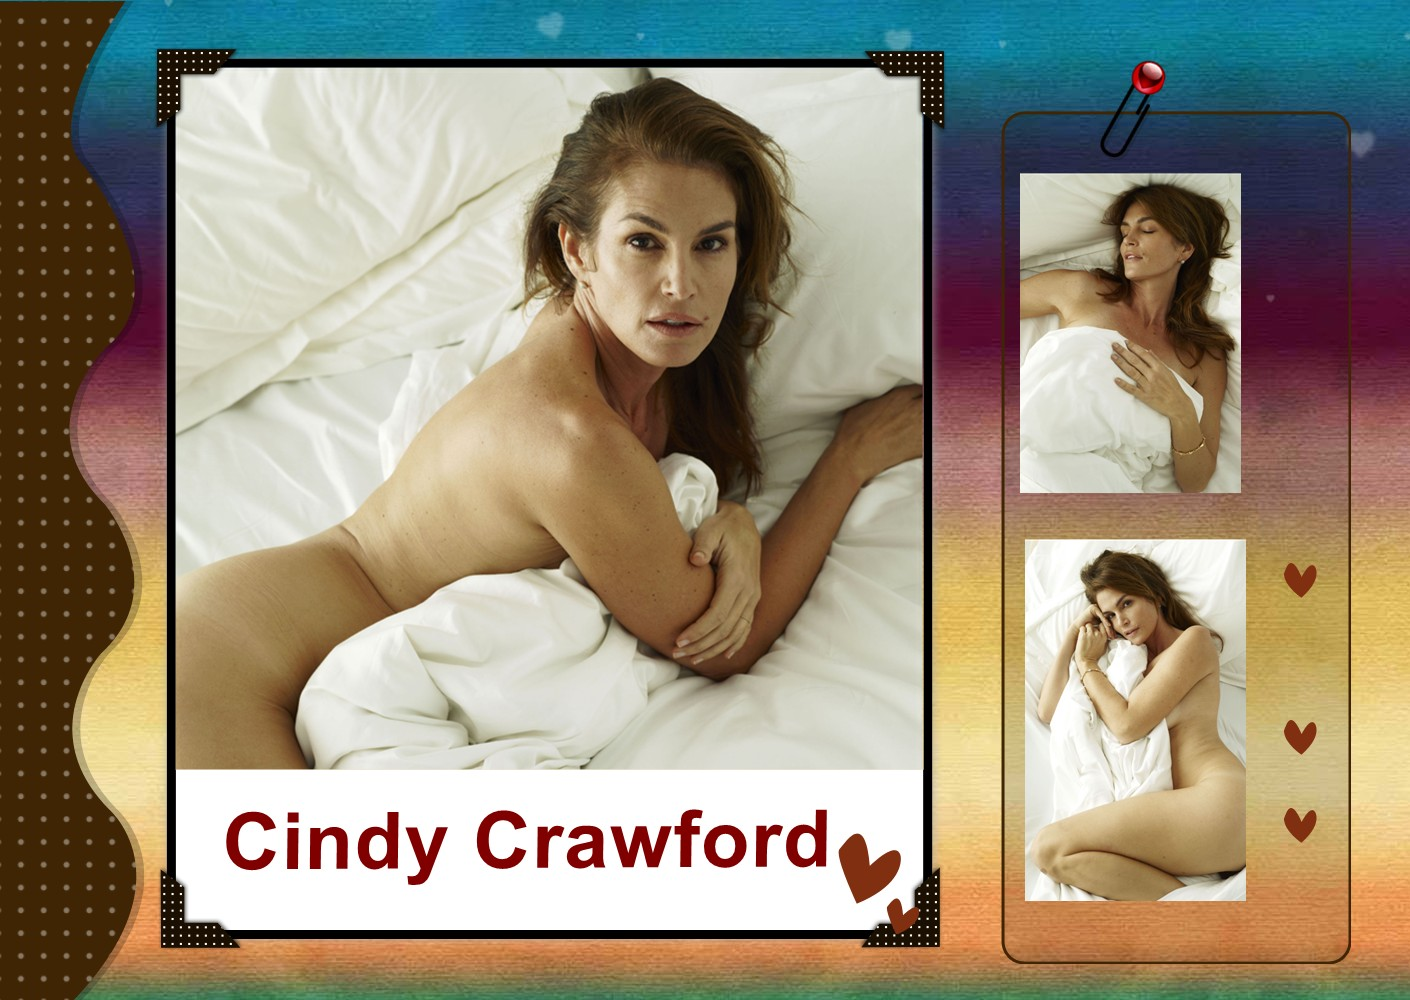 Cindy Crawford Nude Photos, Big Ass